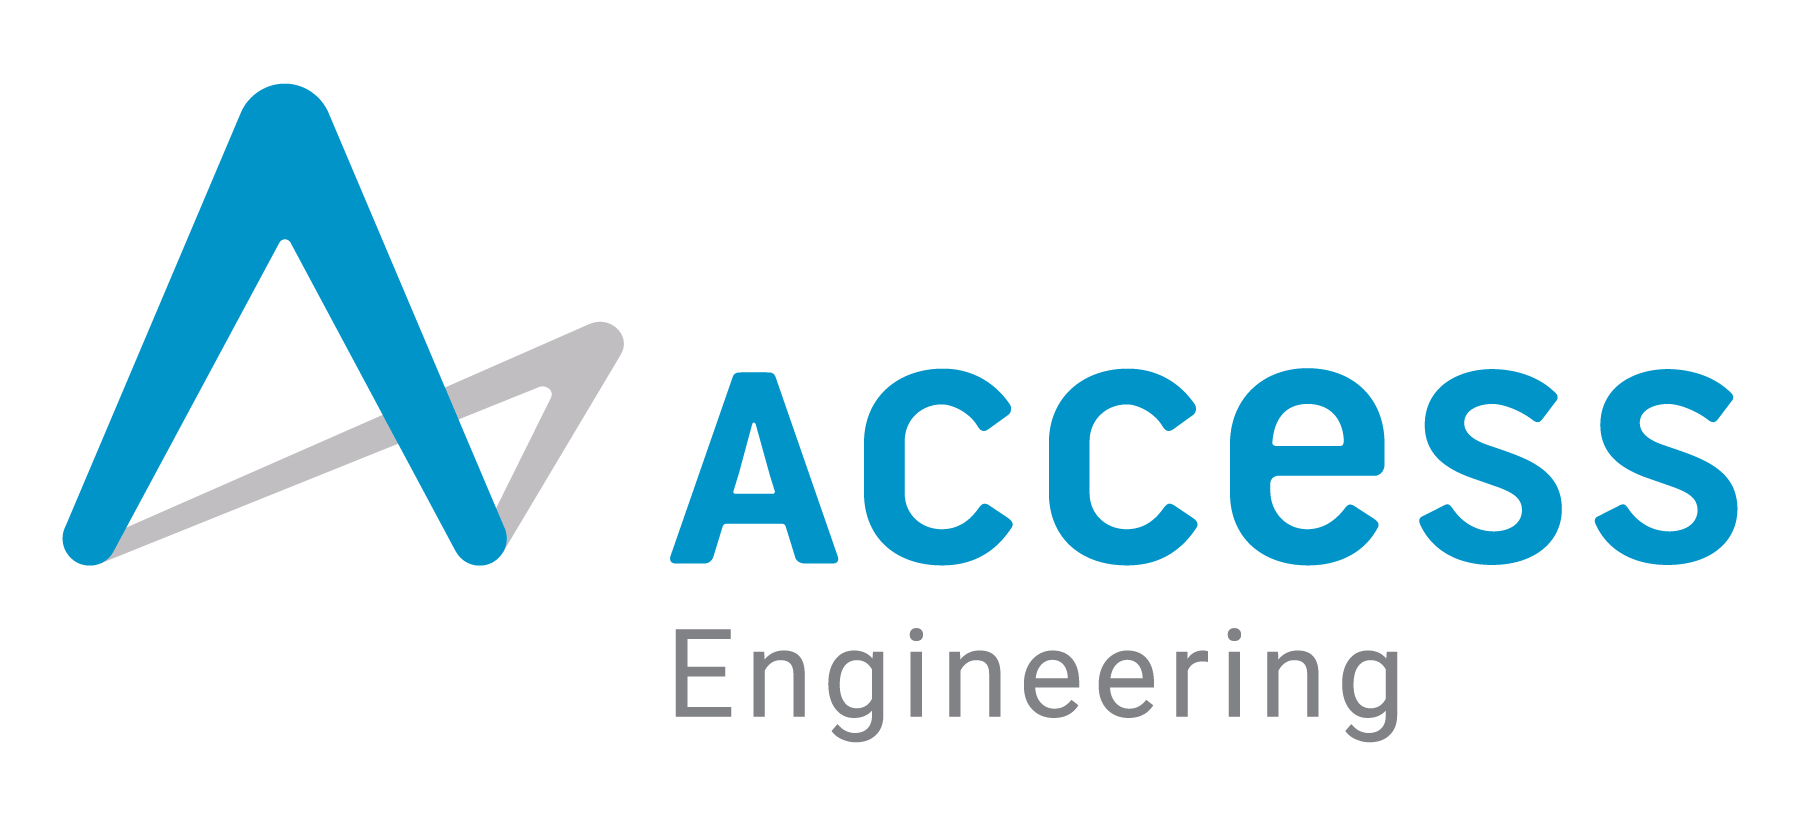 ACCESS ENGINEERING CONSULTANTS LTD. logo